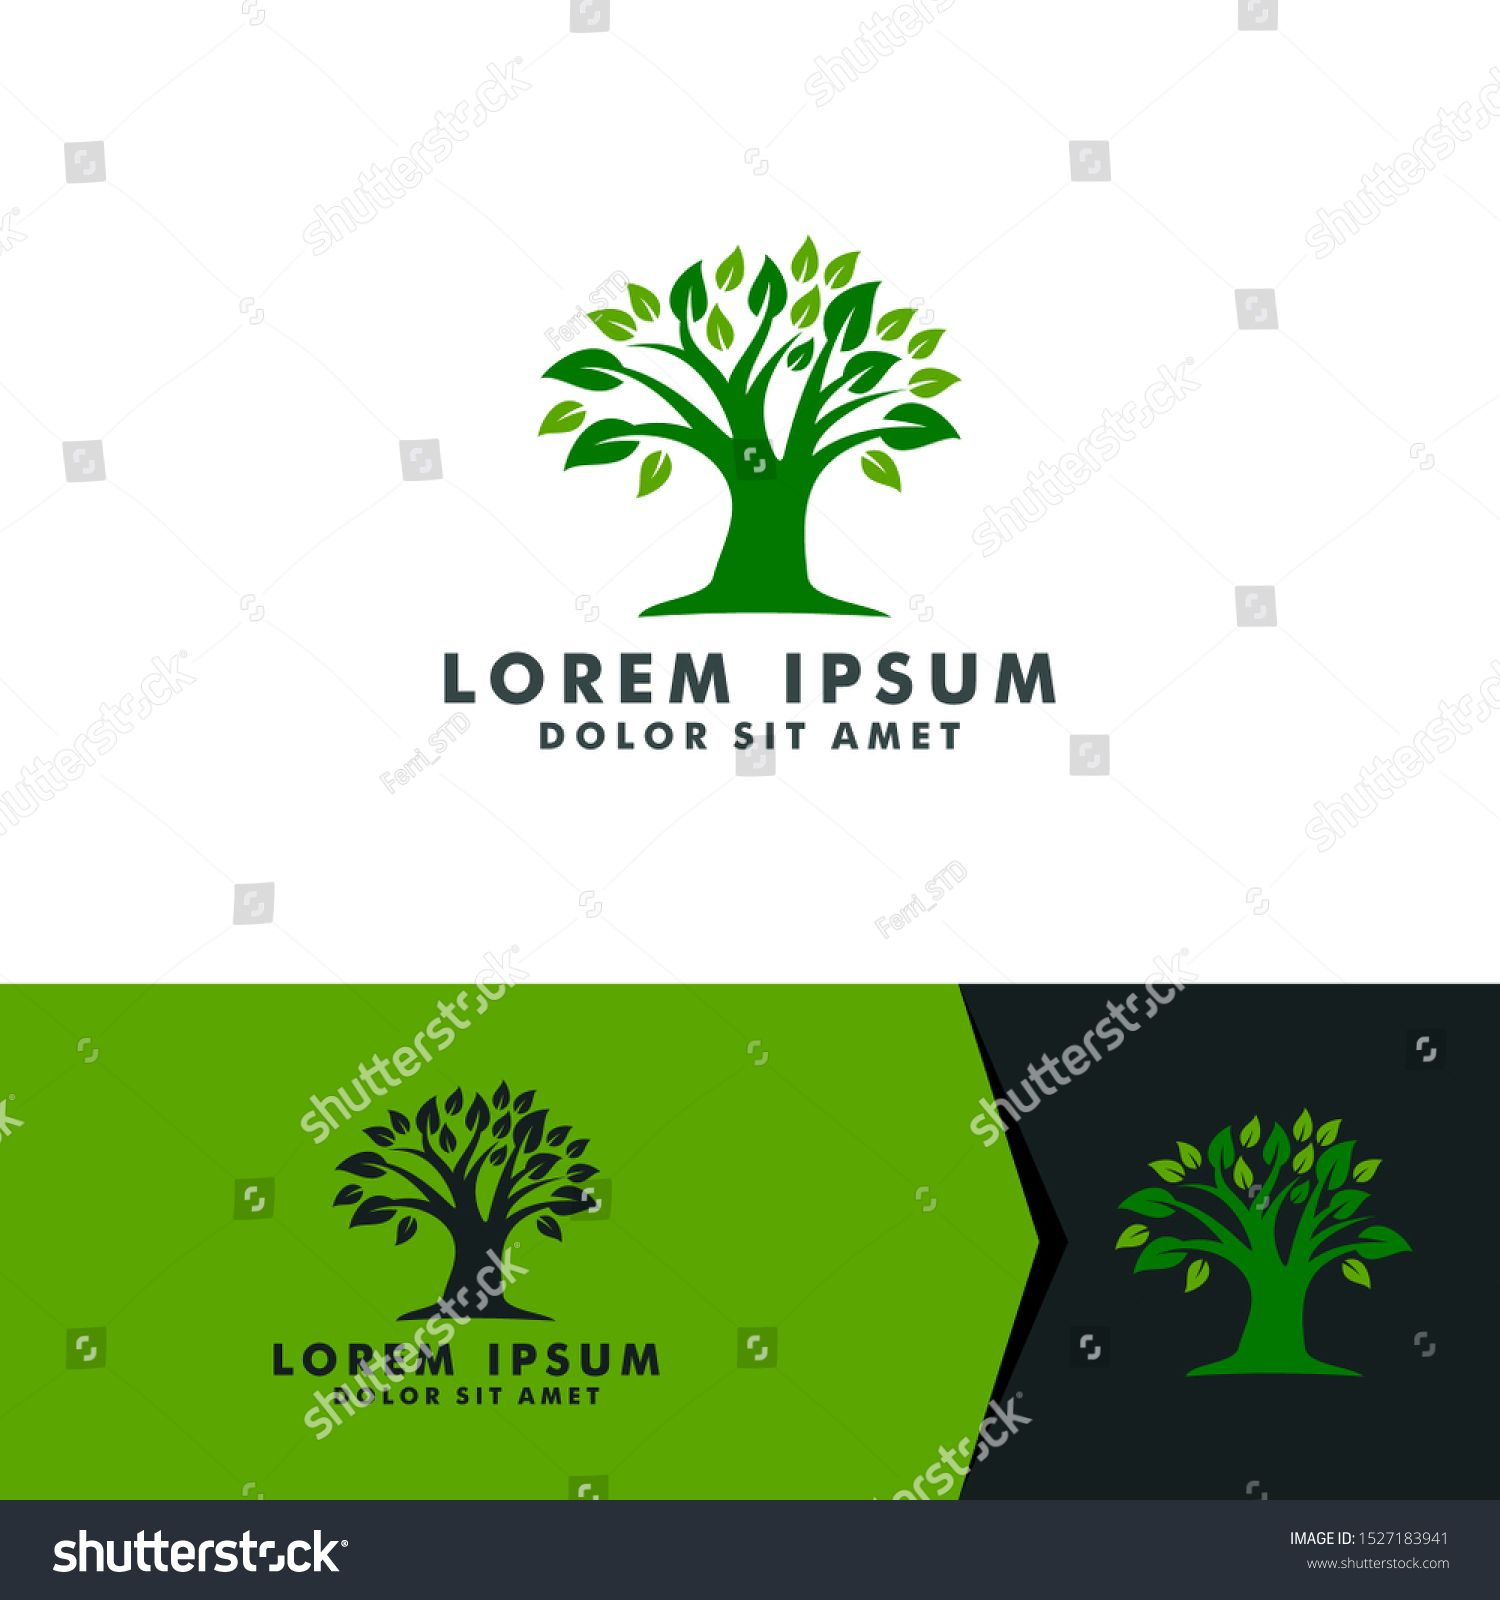 Tree logo design, nature forest icon vector illustration #Ad , #Ad, #design#nature#Tree#logo